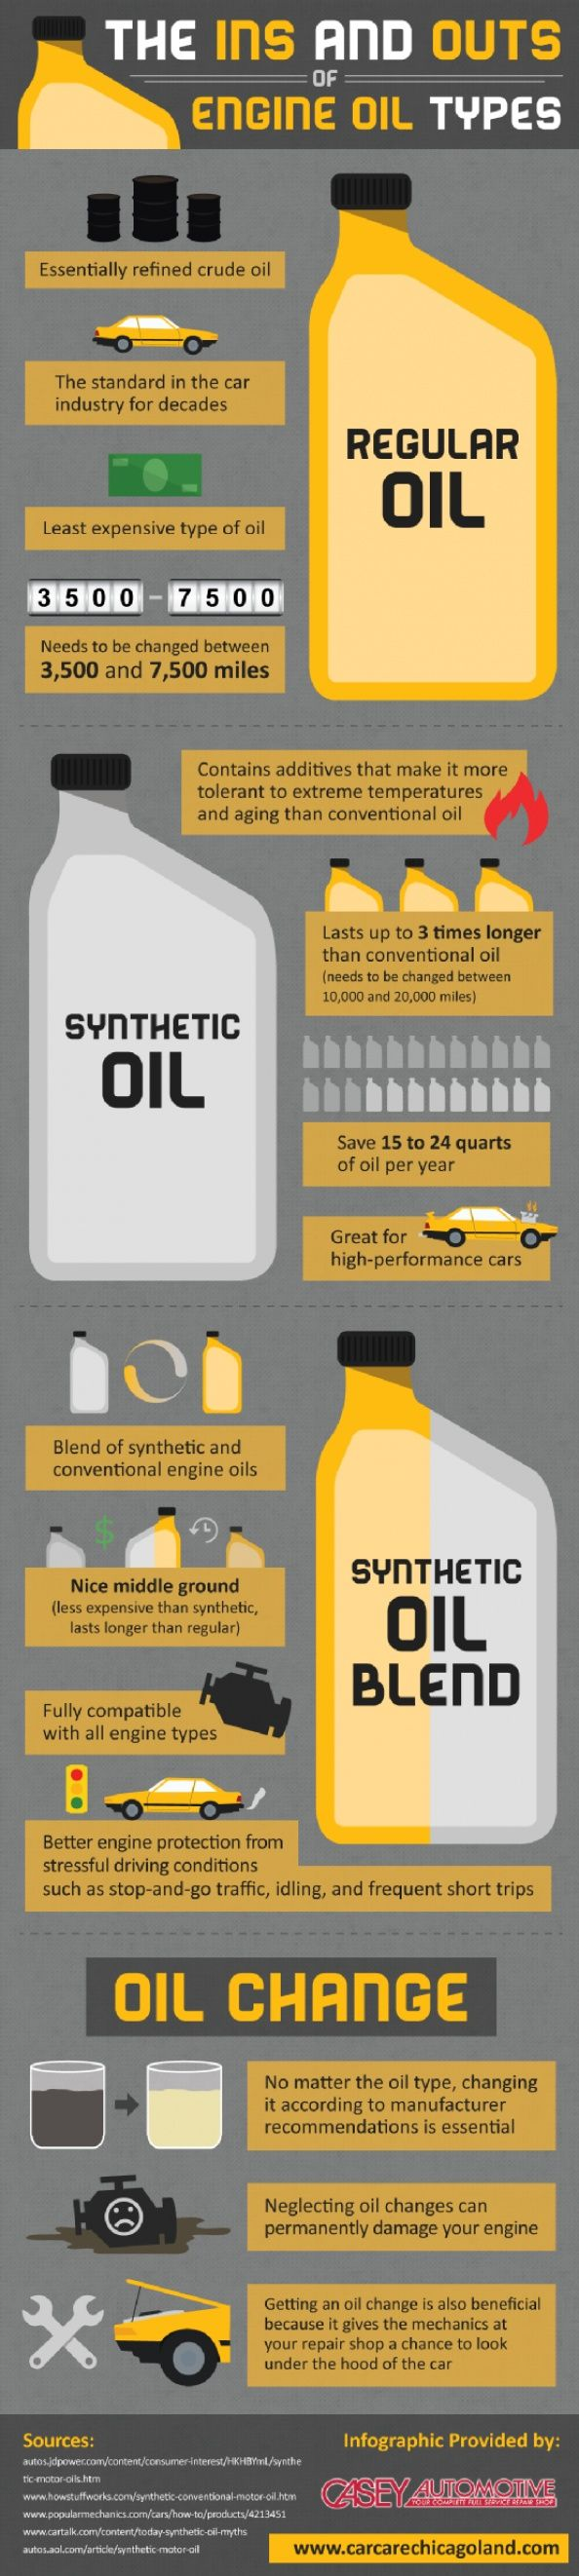 The Ins and Outs of Engine Oil Types Infographic  #Insurance #FranklinTN